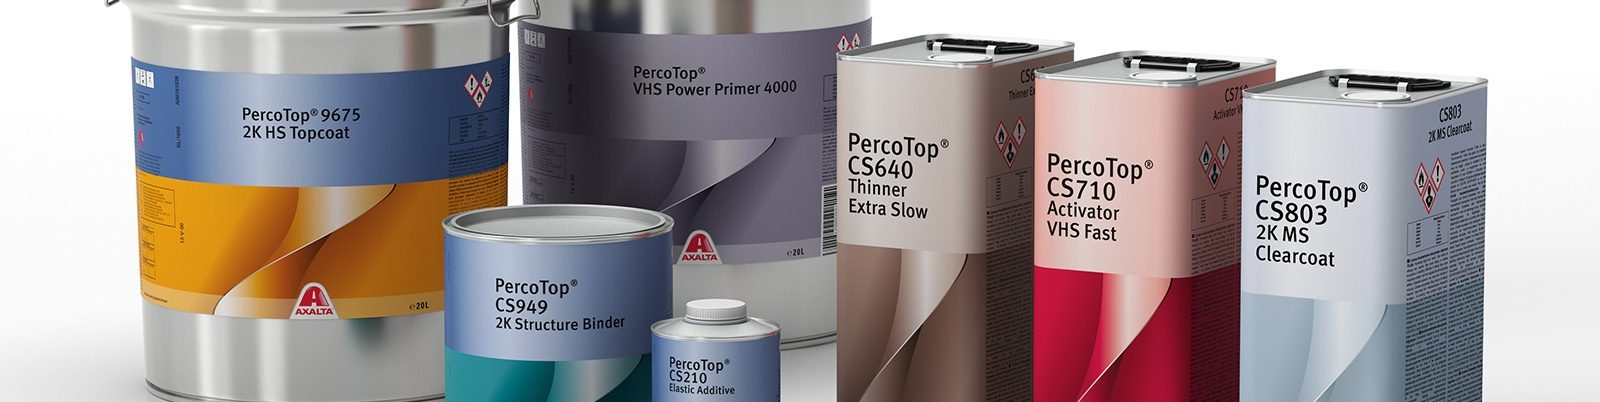 PercoTop product range